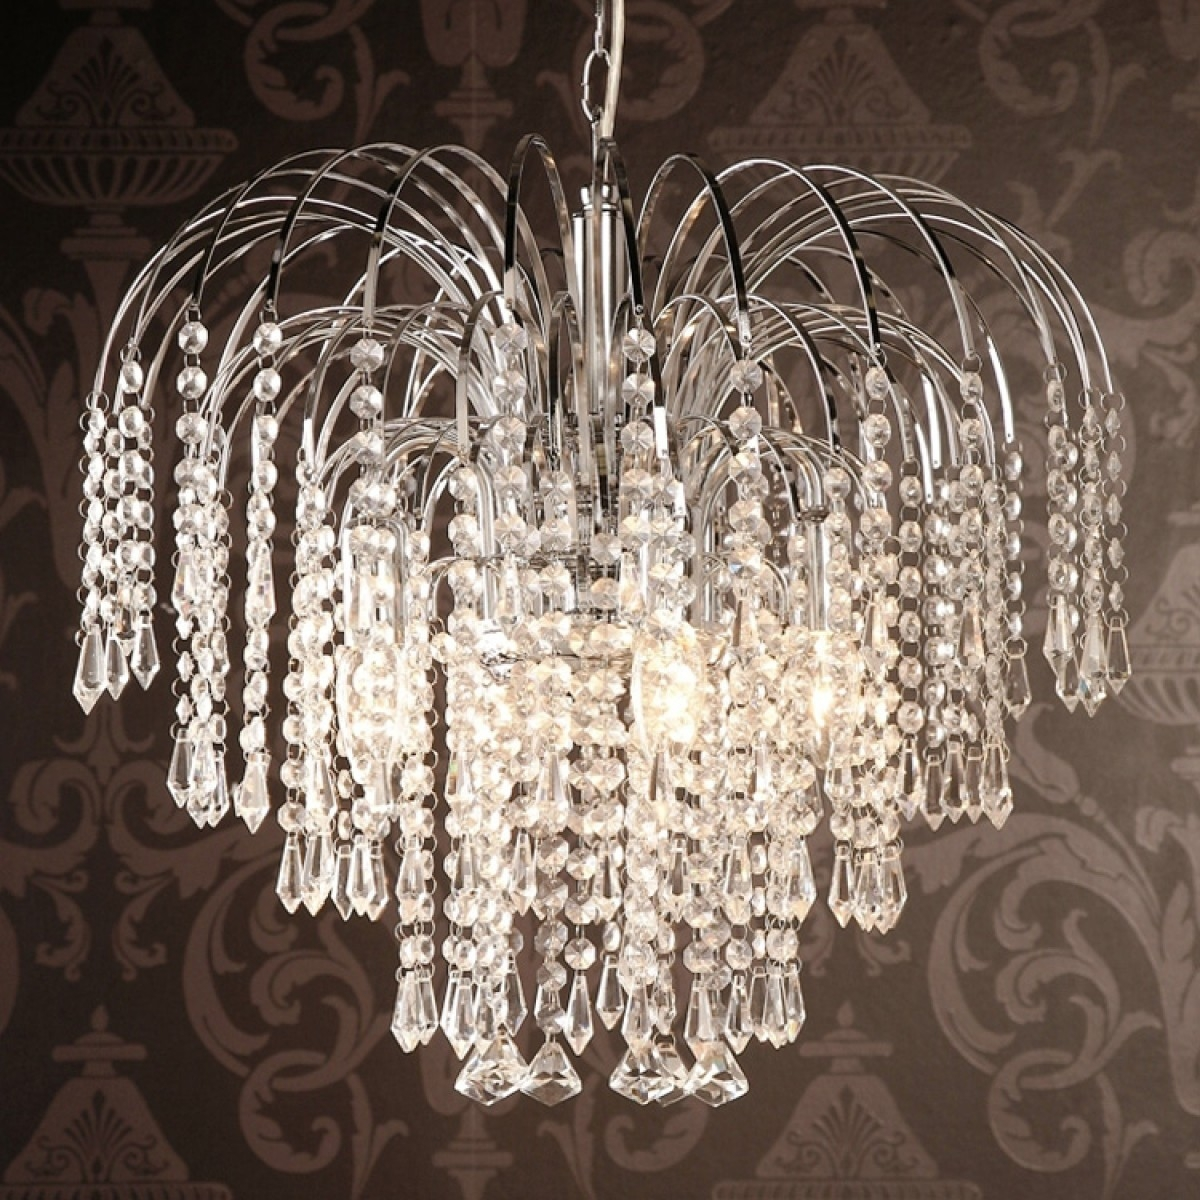 Four Light Chrome Crystal Chandelier Within Crystal Waterfall Chandelier (Image 9 of 15)